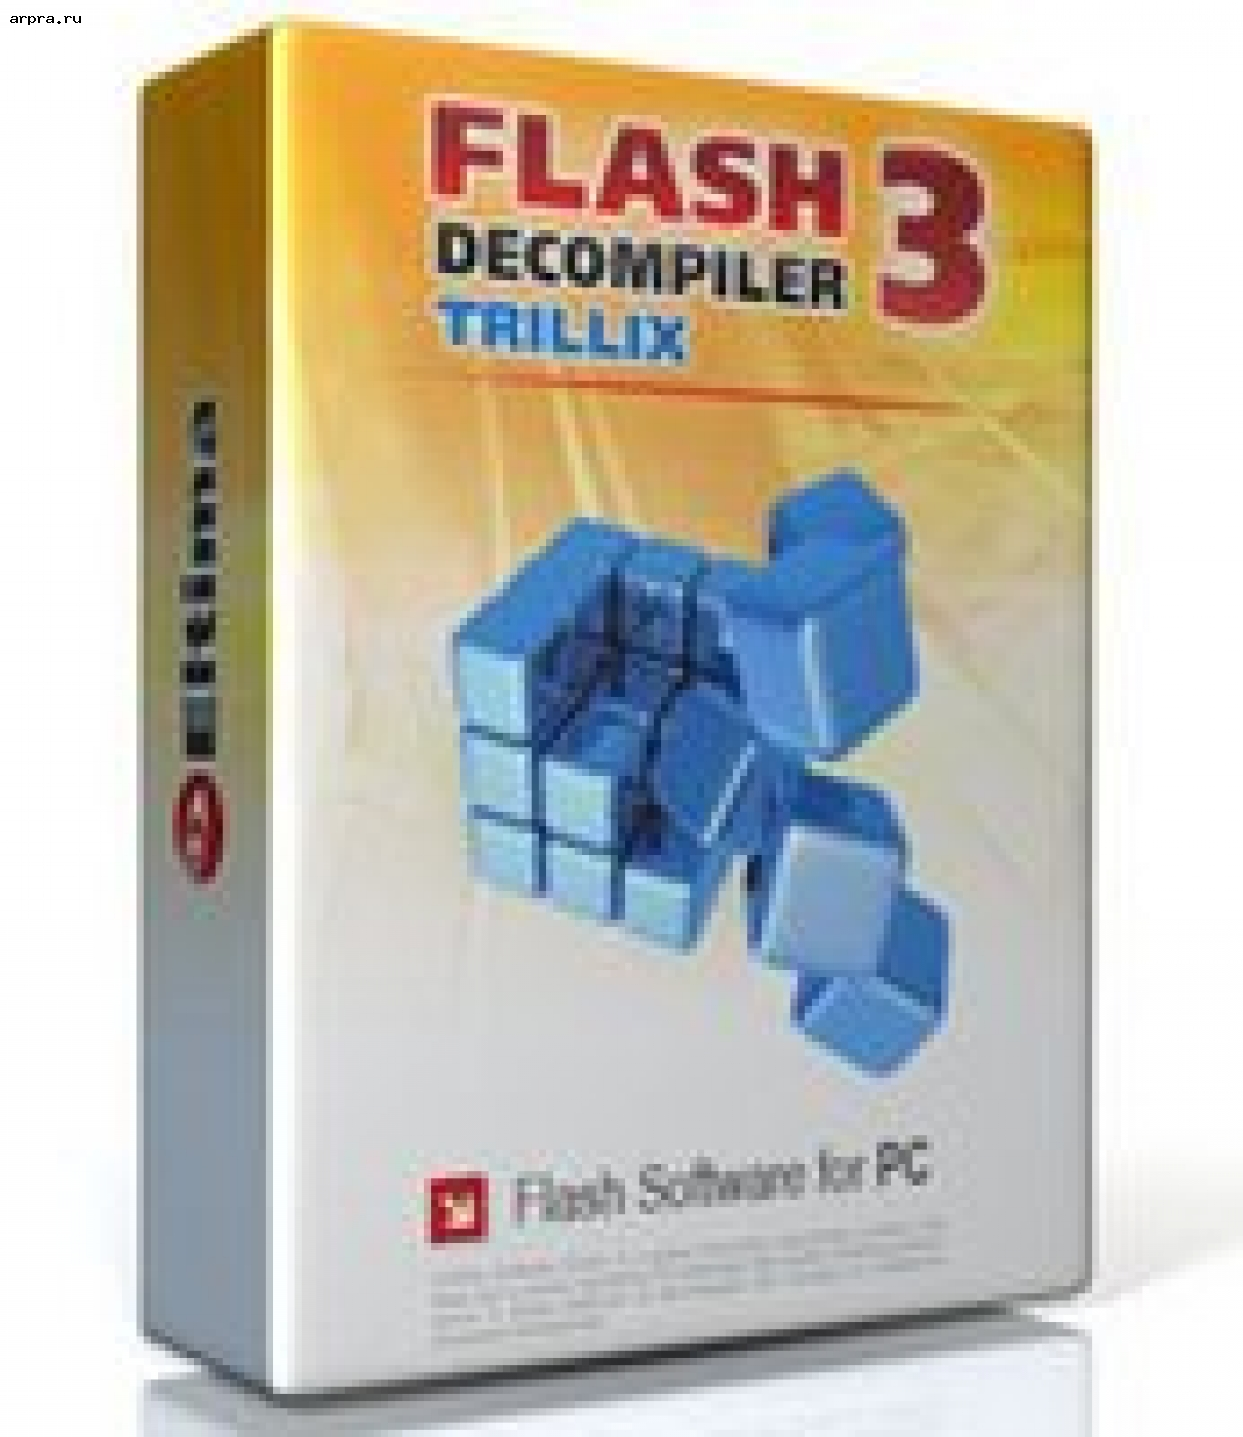 Flash Decompiler Trillix v 5.1.1140 Portable (русский)